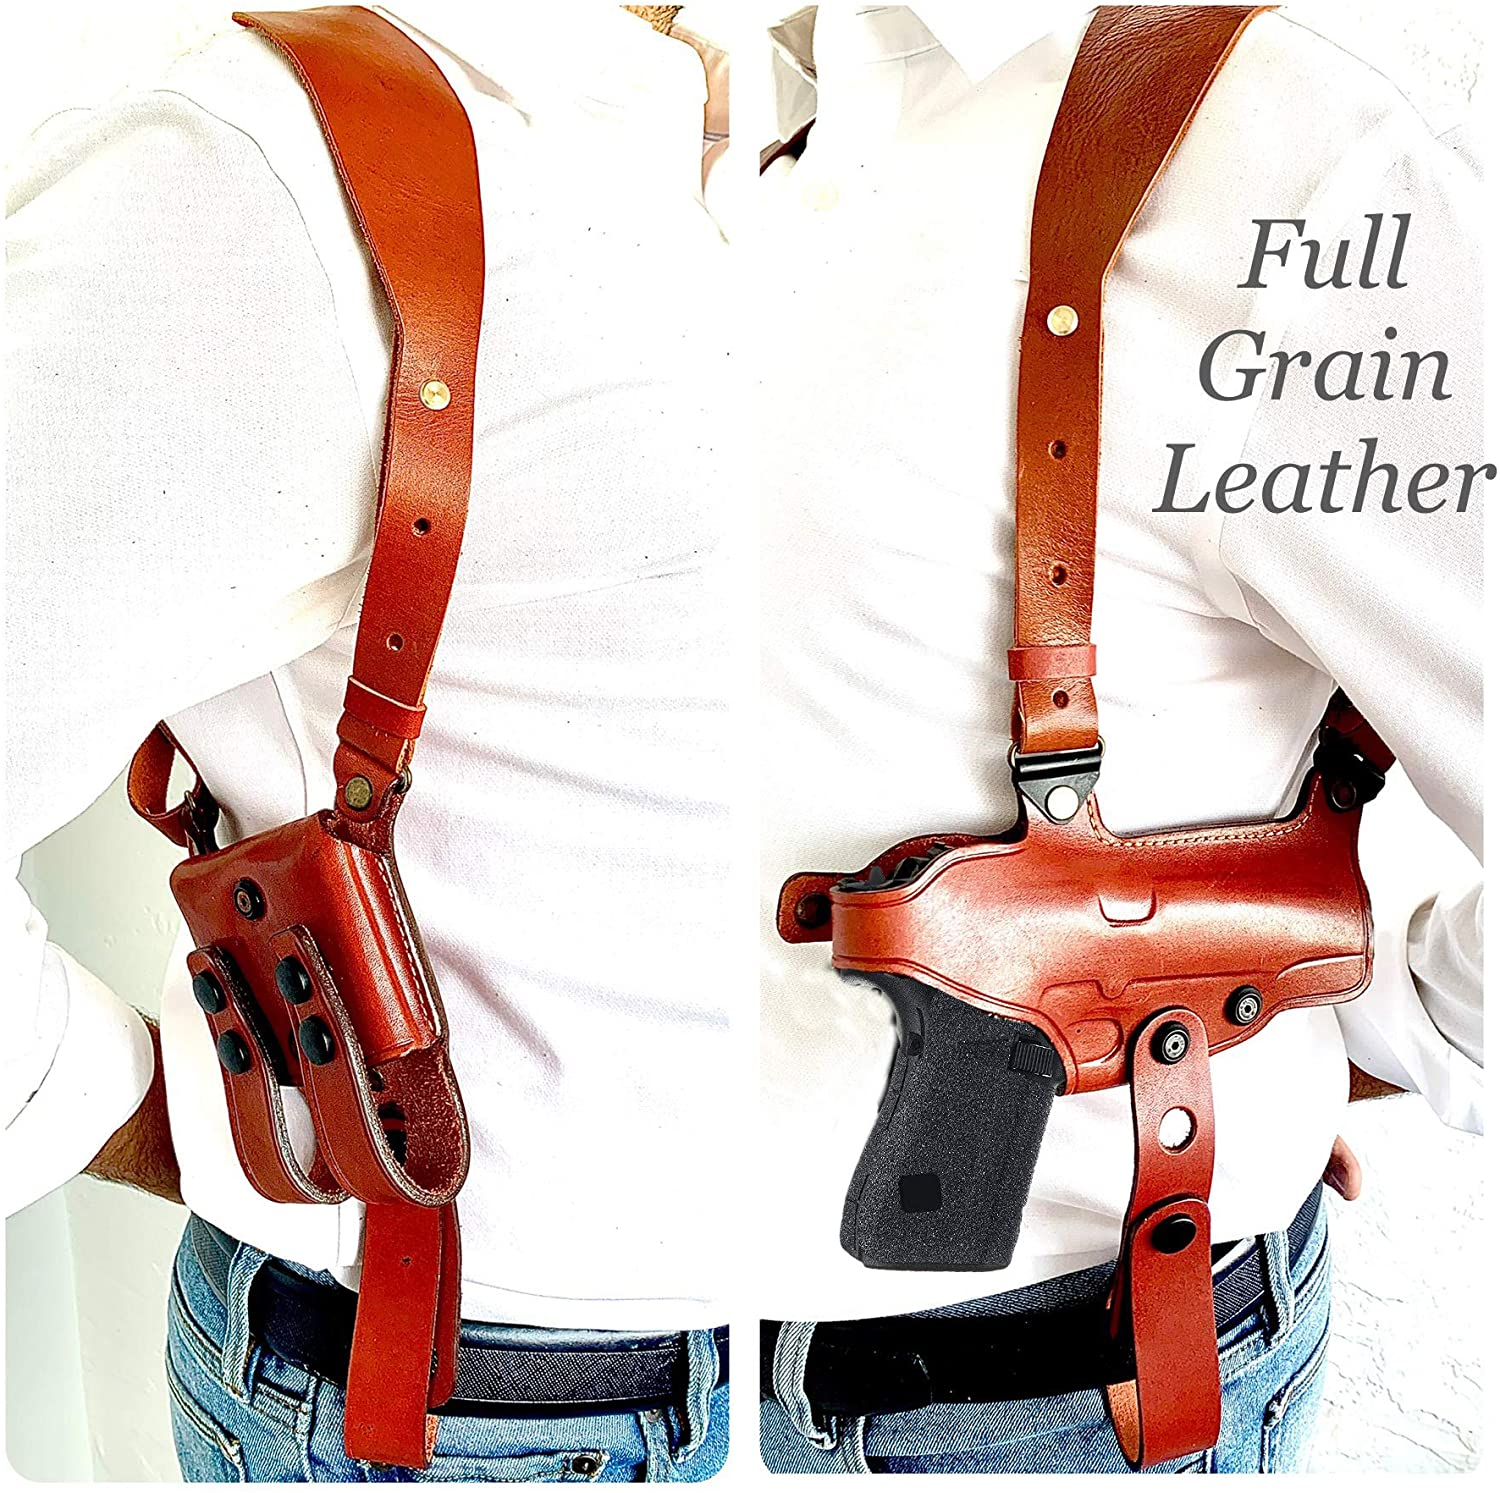 Aysesa Rig for Glock 19 Leather Shoulder Holster fits Many Glock Pistols: Glock 17/19 / 23/26 / 32/43 / Right Handed/Mag Pouches and Tie Down Straps Included Full Set (Tan Brown)